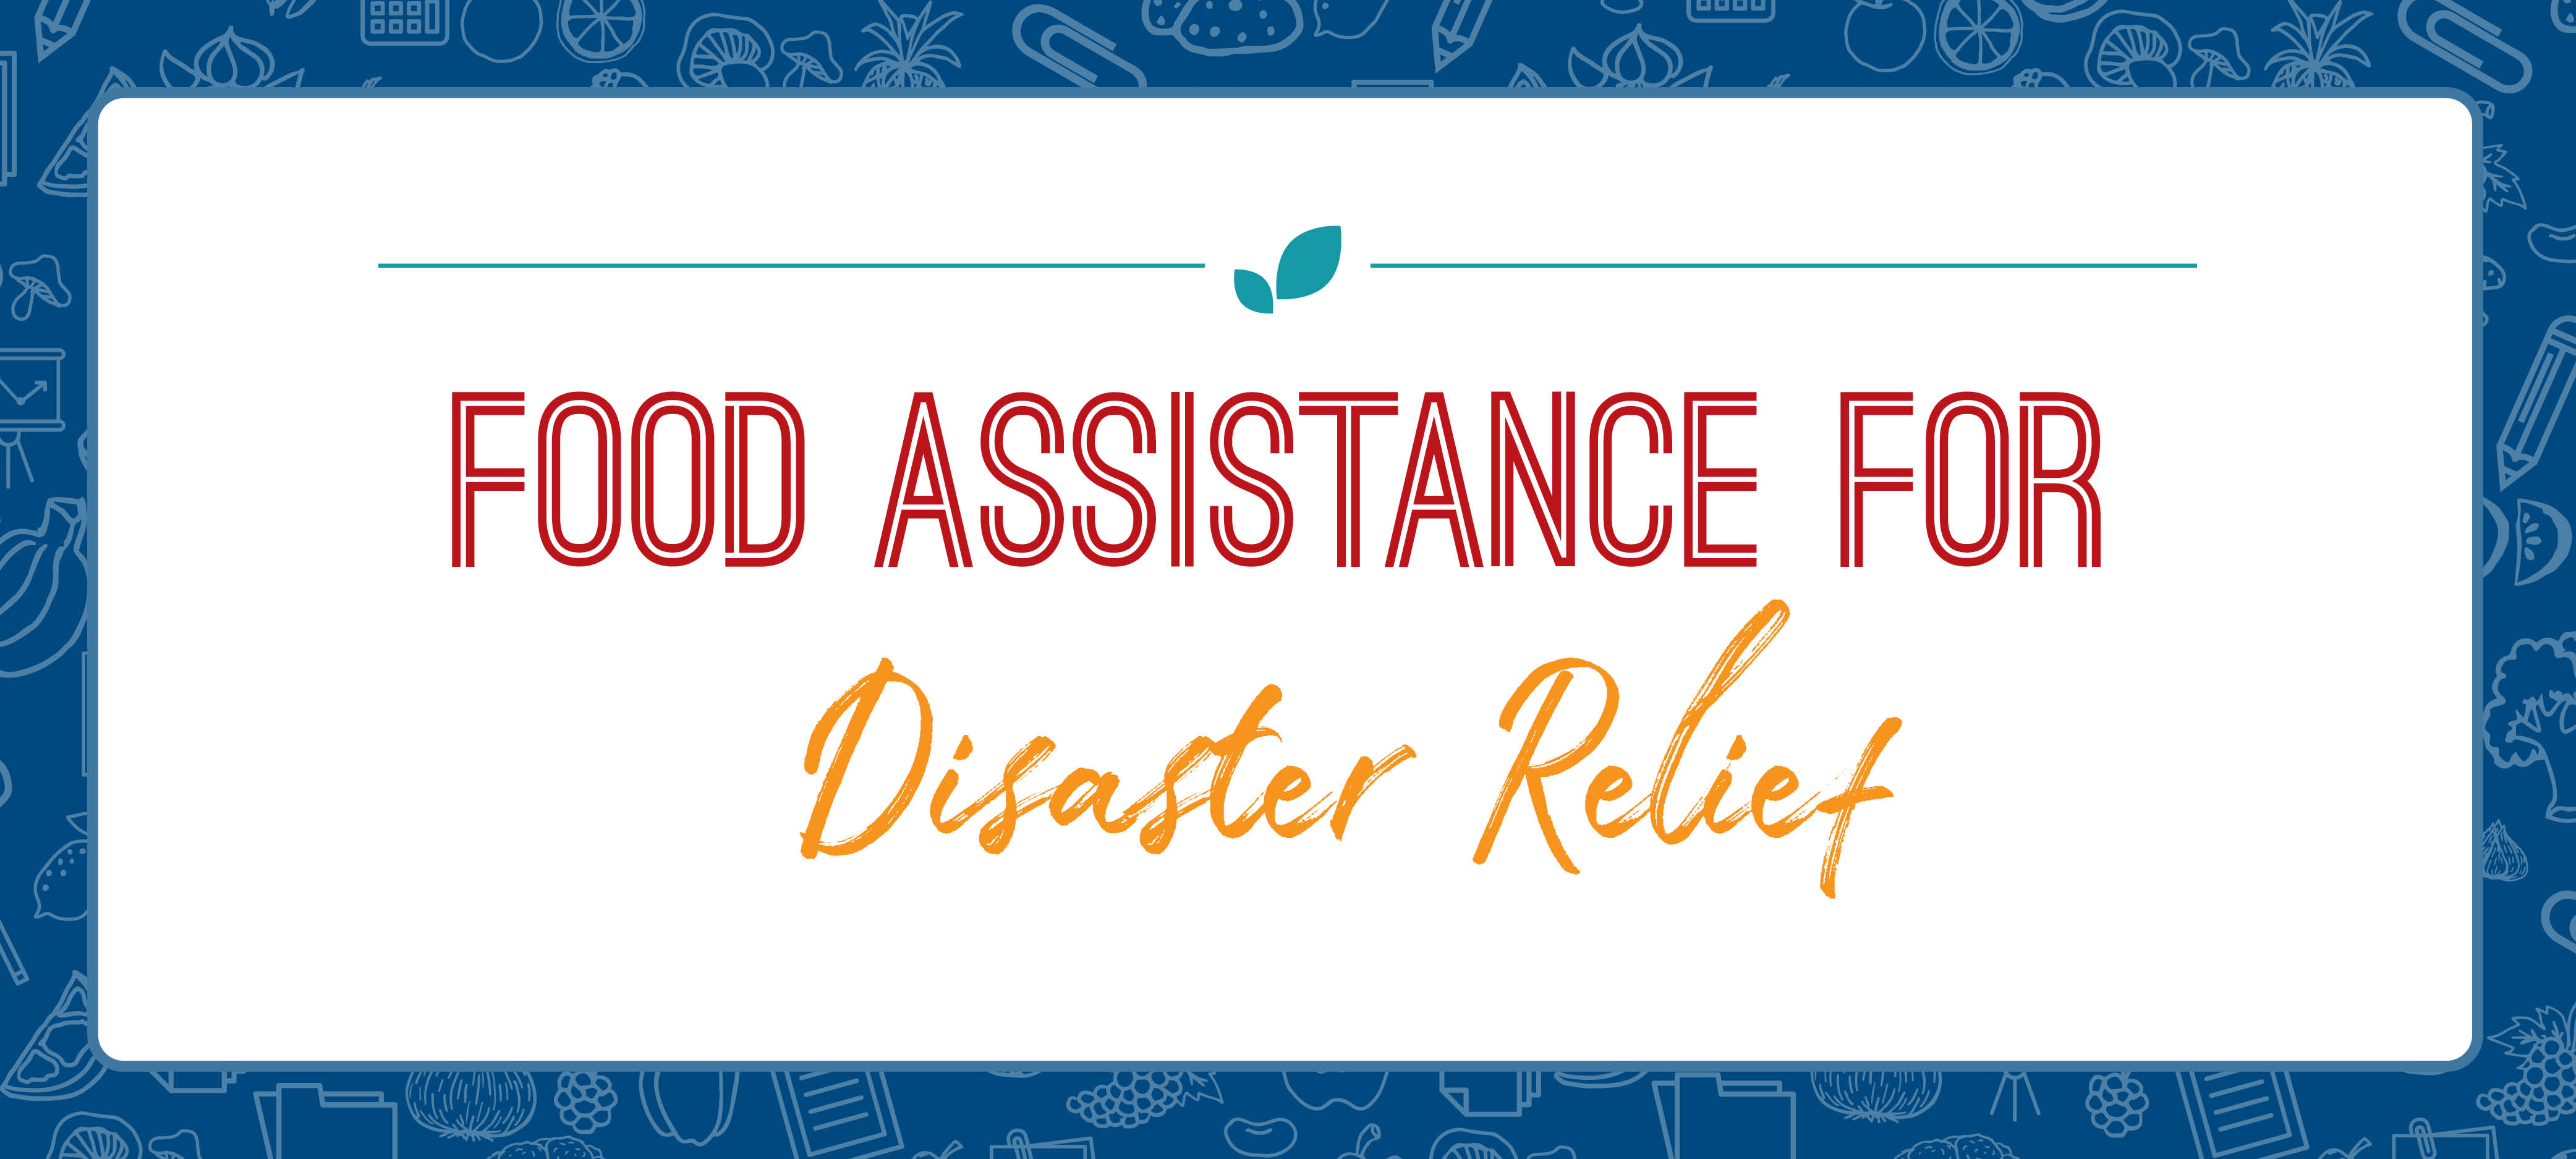 Food Assistance for Disaster Relief